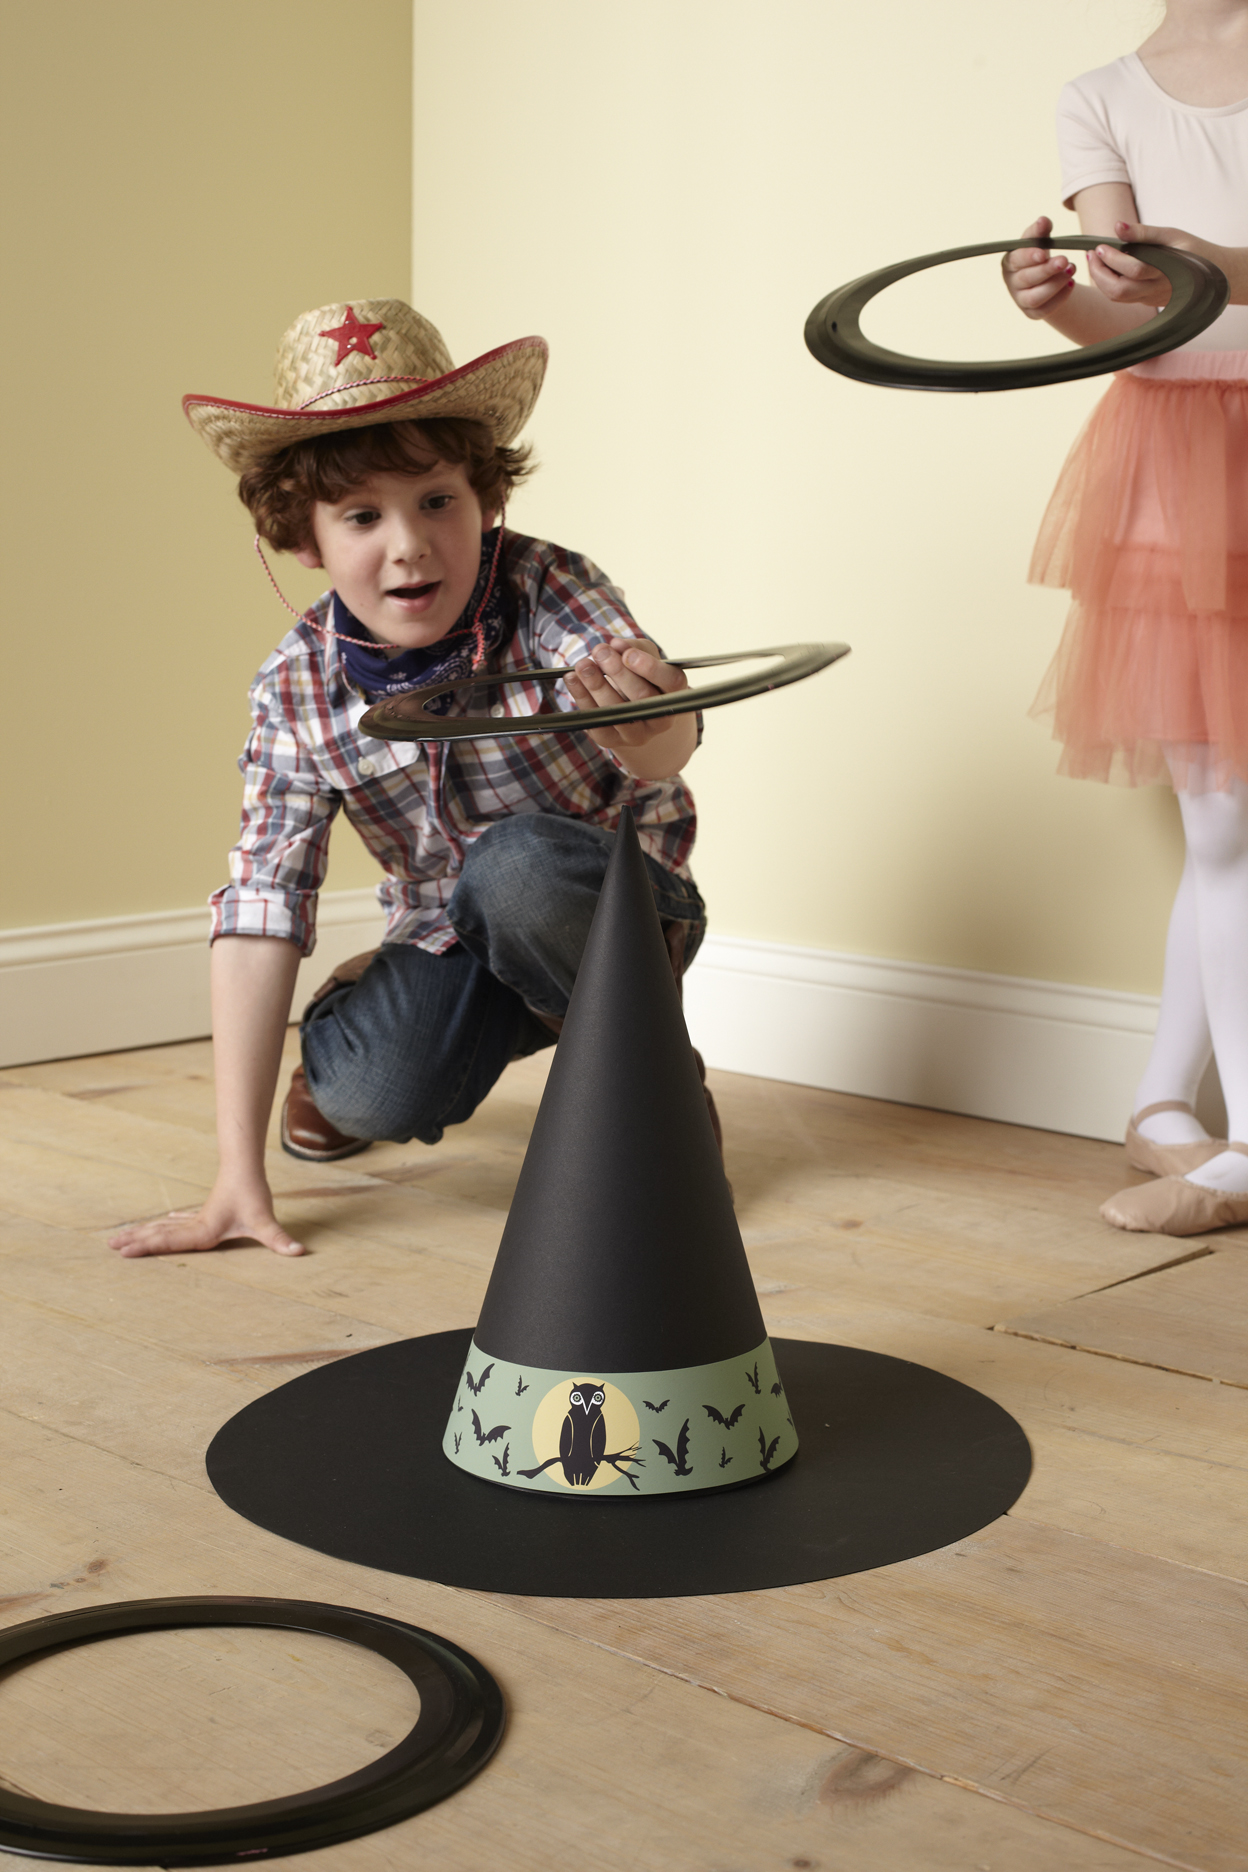 witch's hat ring toss game for Halloween